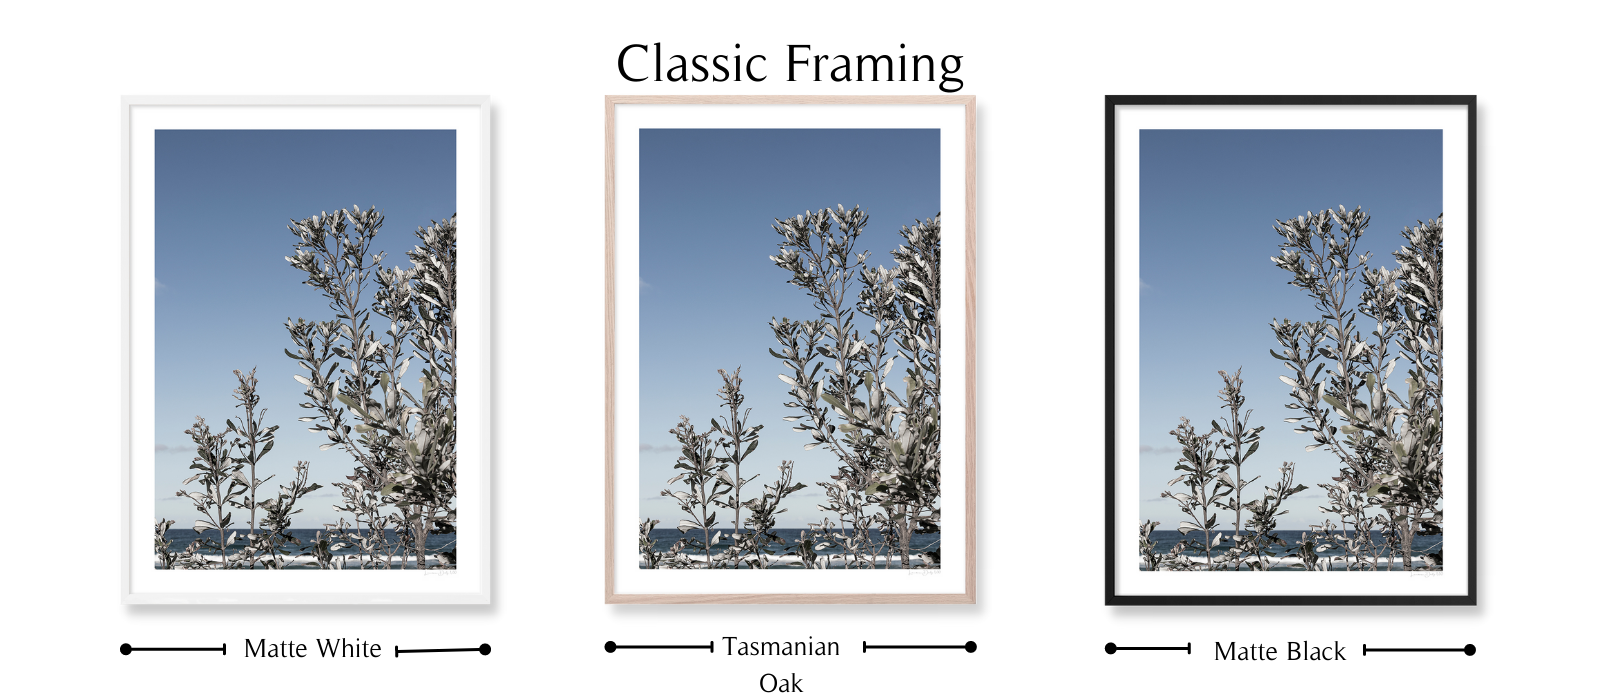 Silver Banksia by Lauren Daly |Classic Framing Style | LD Art House